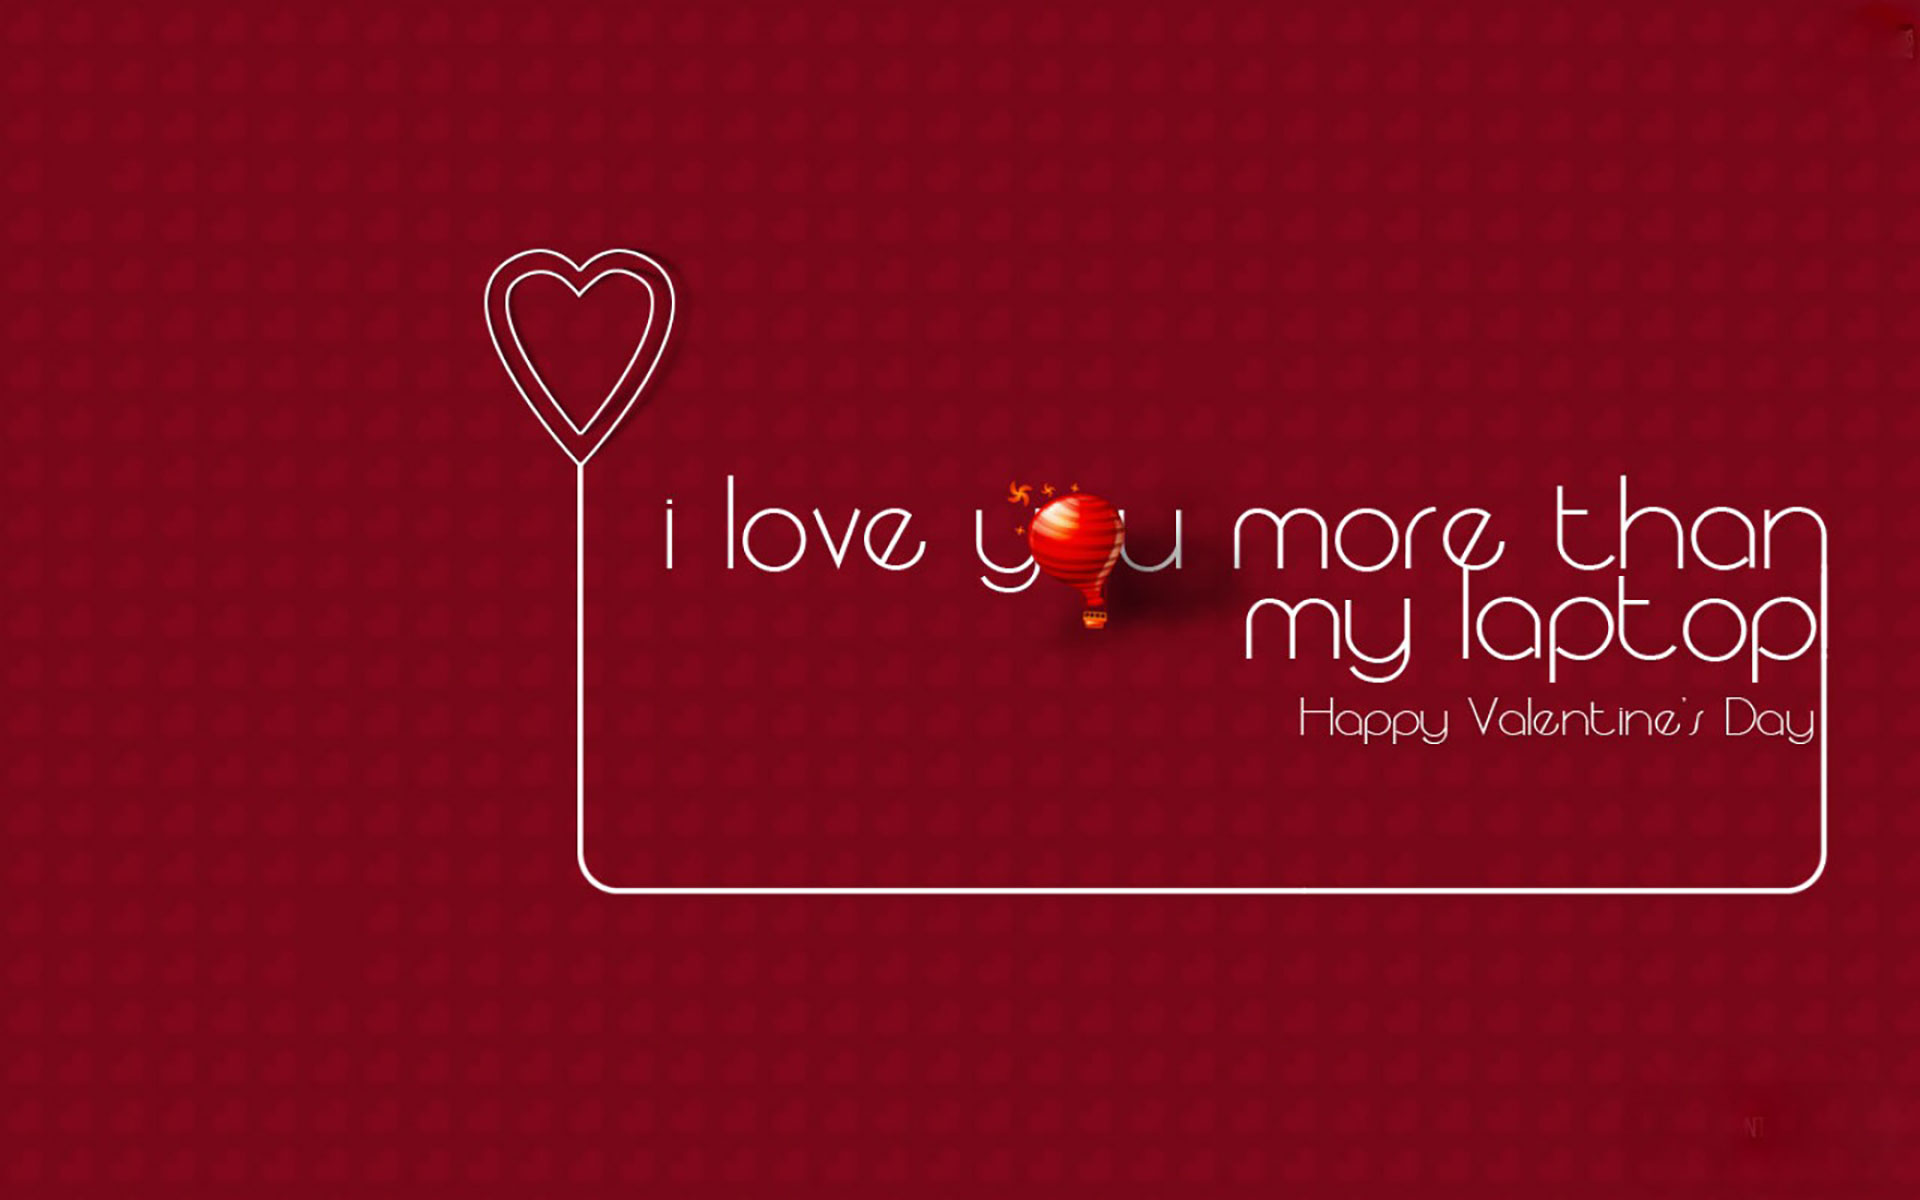 20 Happy Valentines Day Images For Free Download